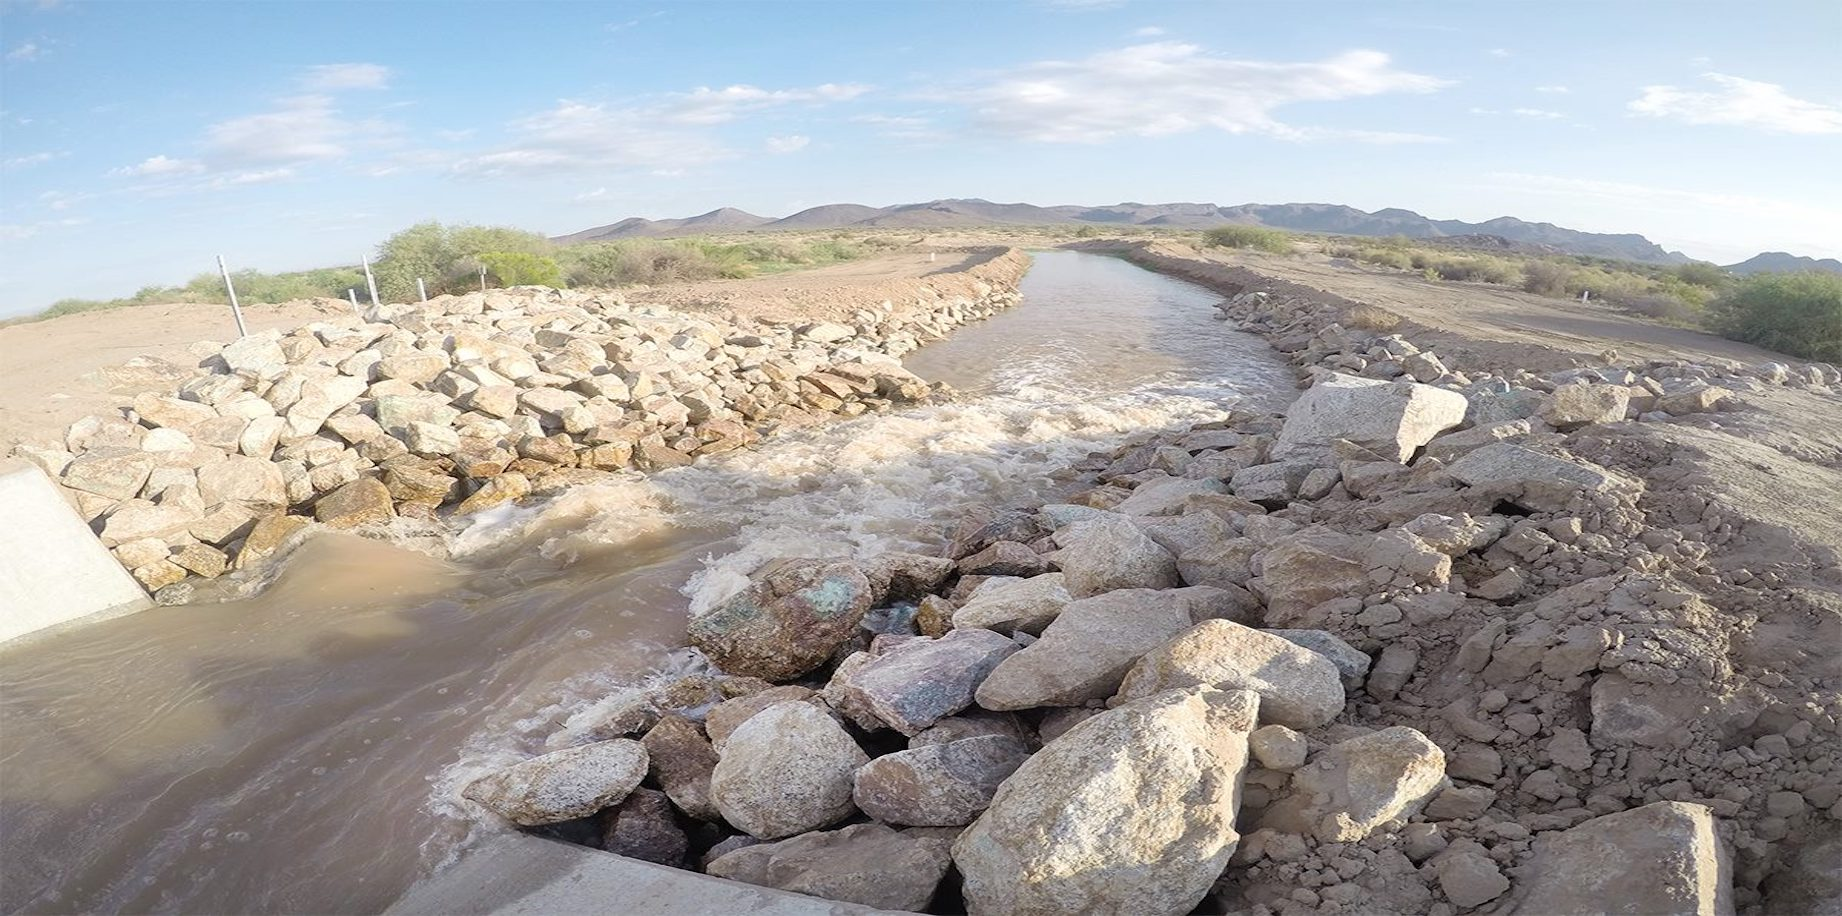 Managed aquifer recharge sites have allowed the Gila River Indian Community to recharge groundwater while also restoring the river.